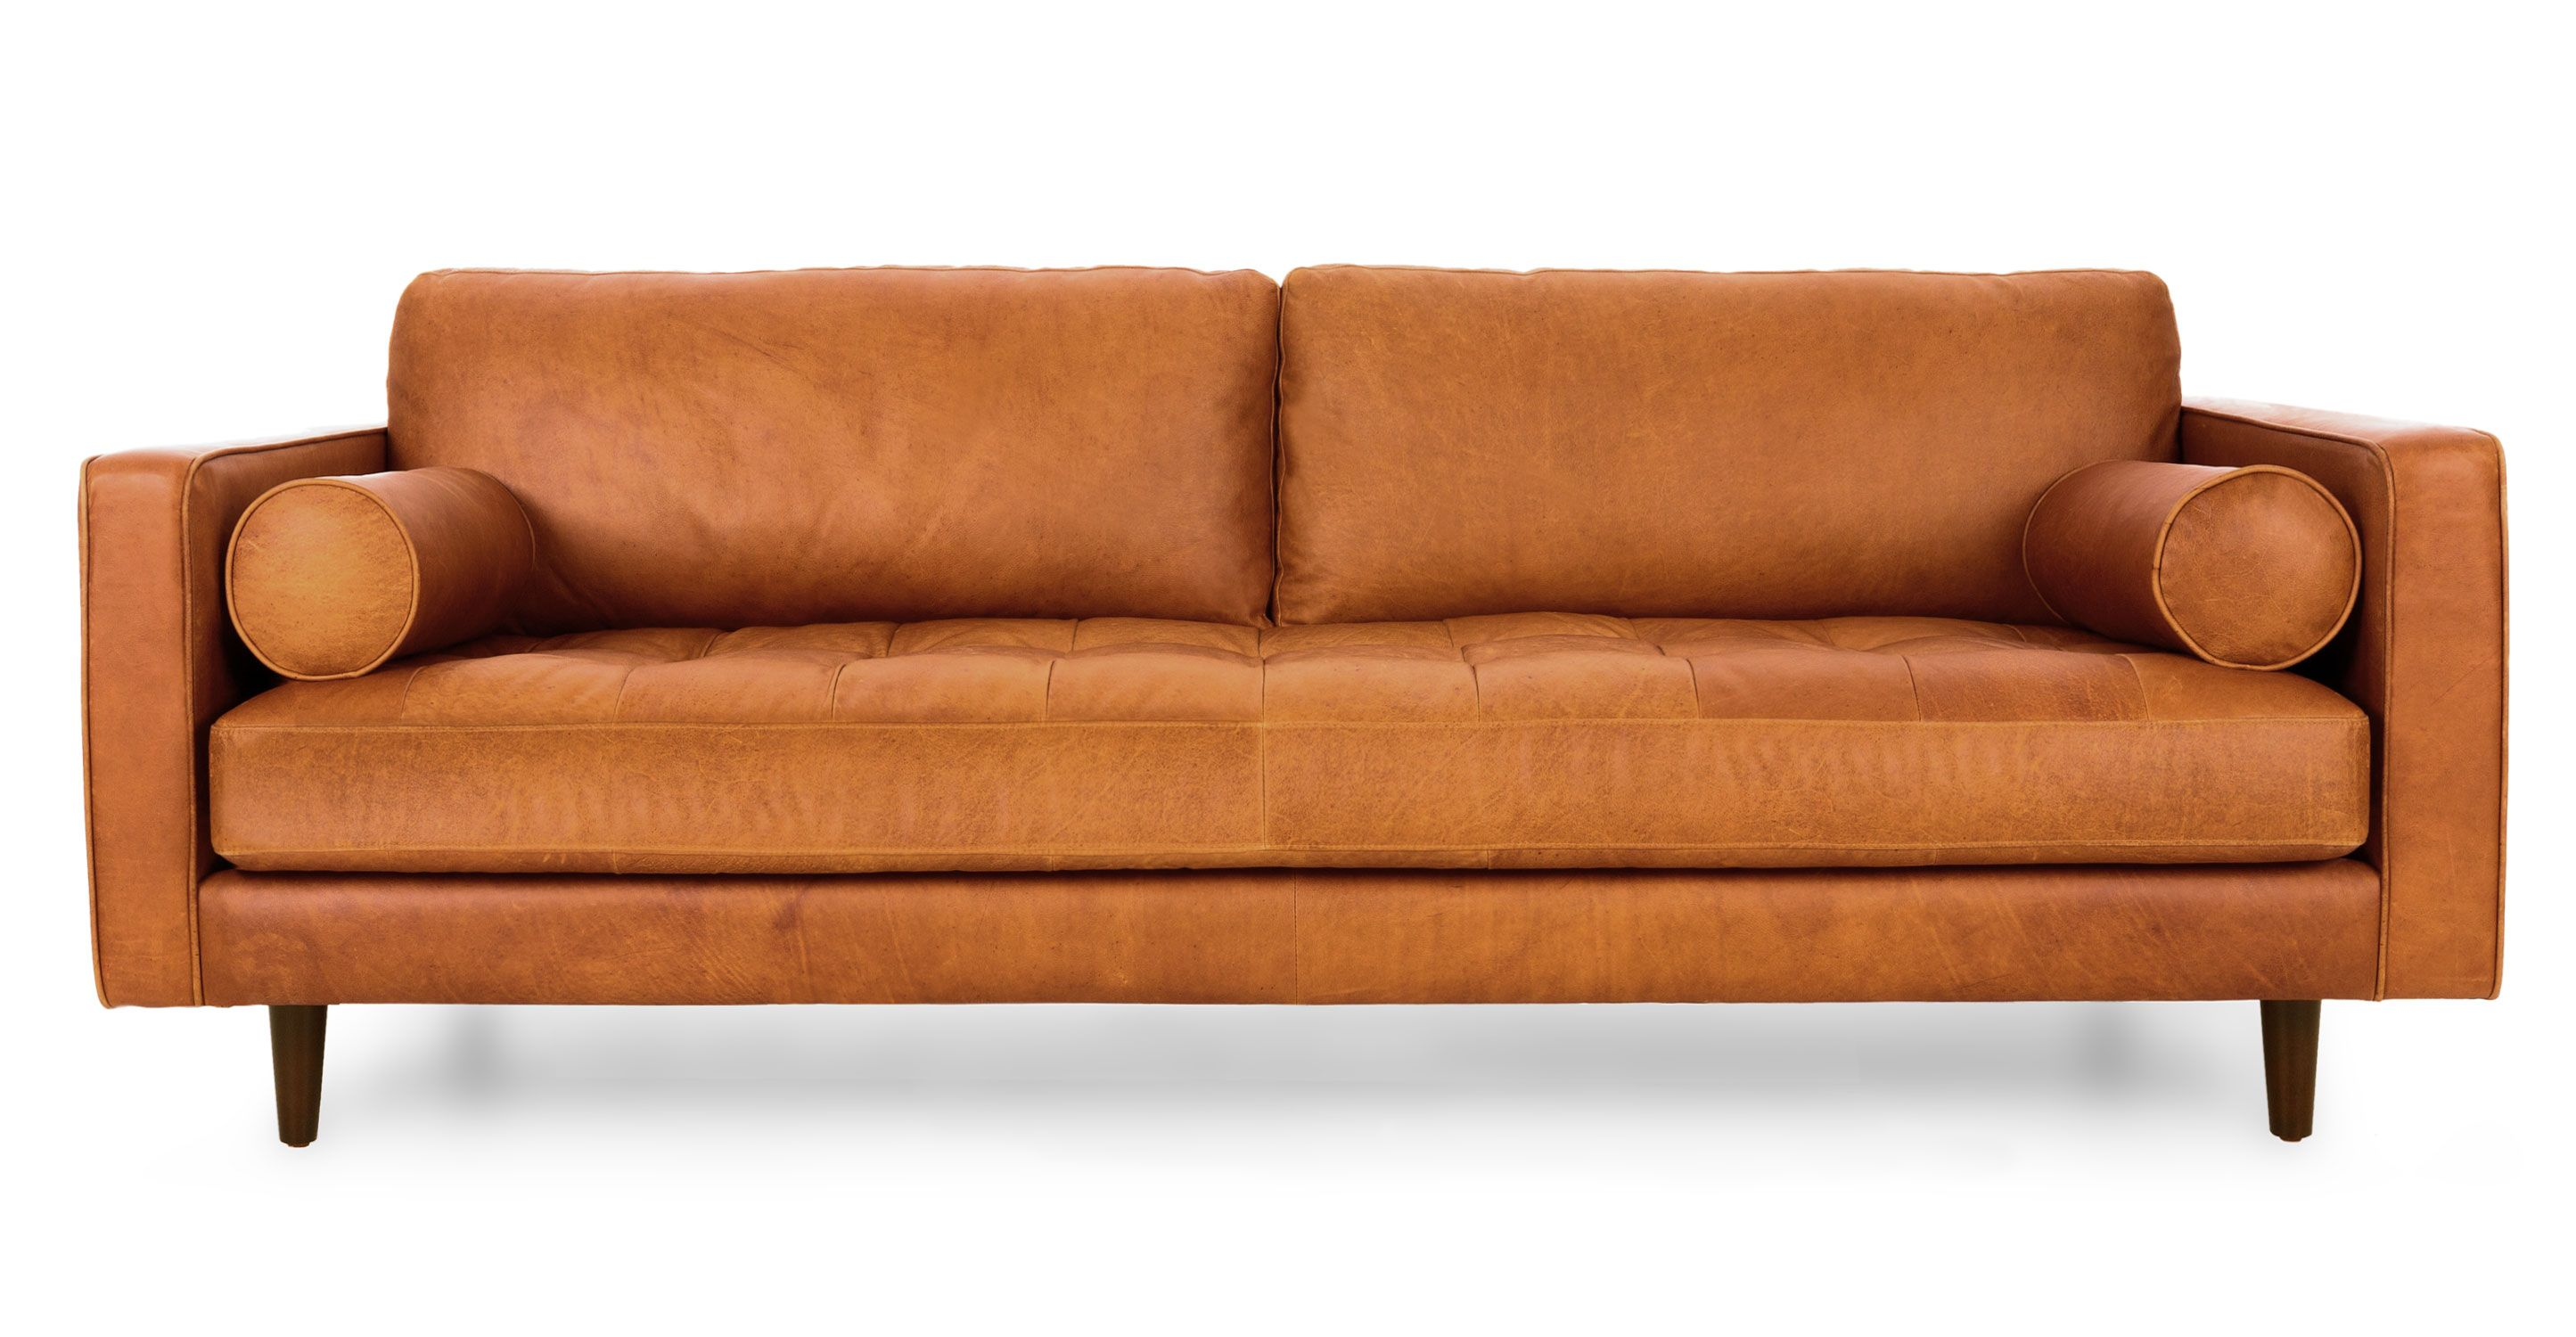 Tan brown leather sofa italian leather article sven for Modern leather furniture